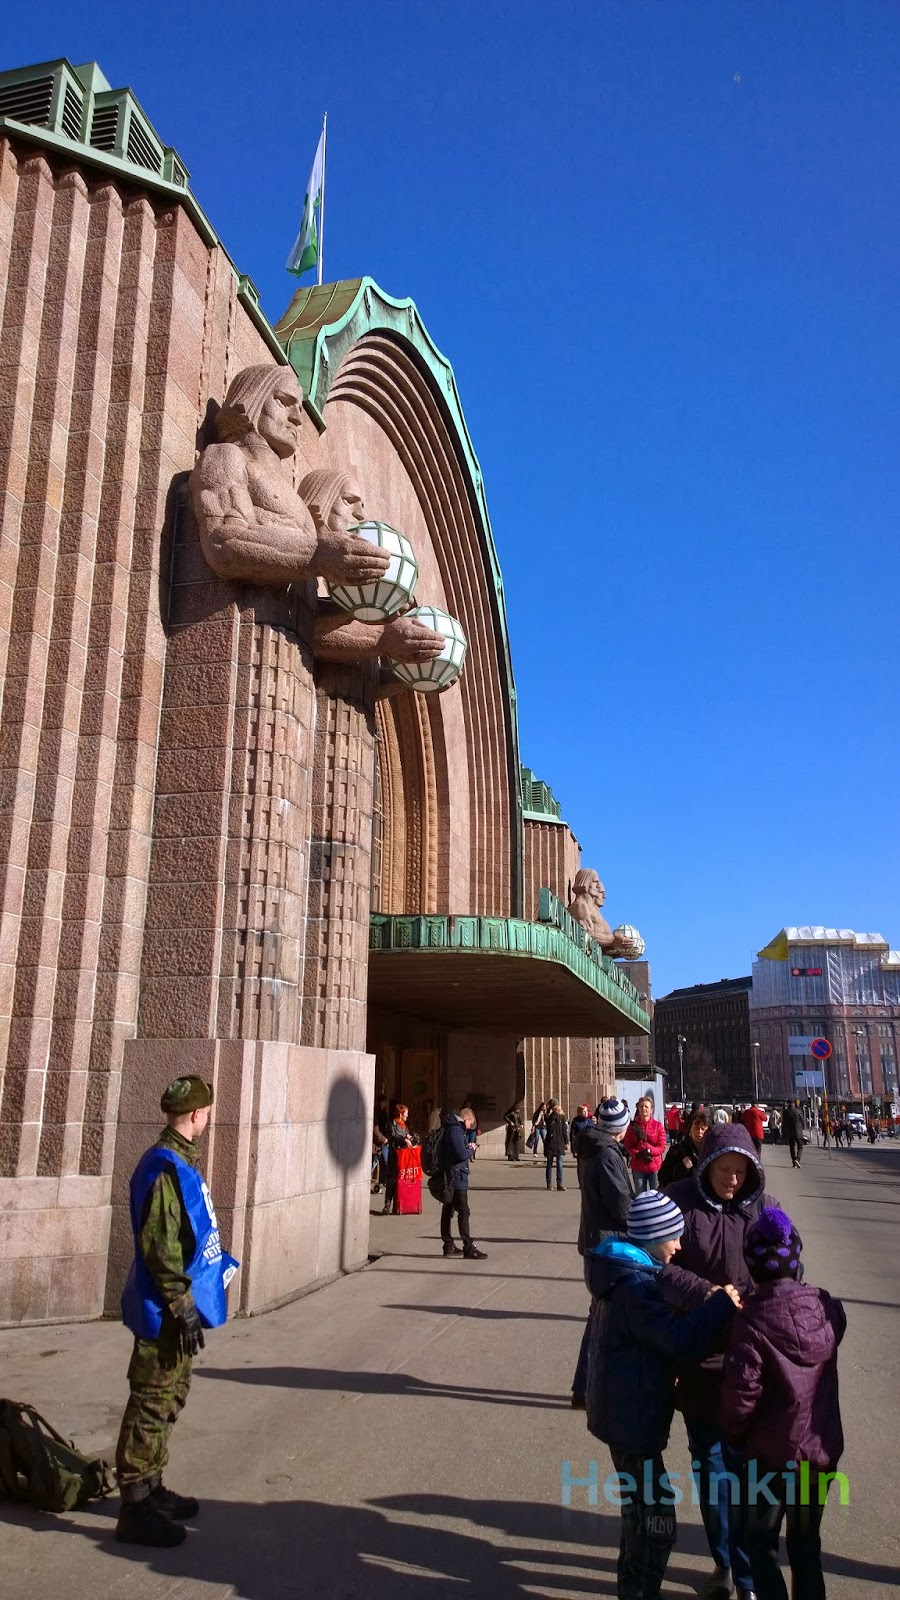 Lantern Men at Helsinki's Main Station